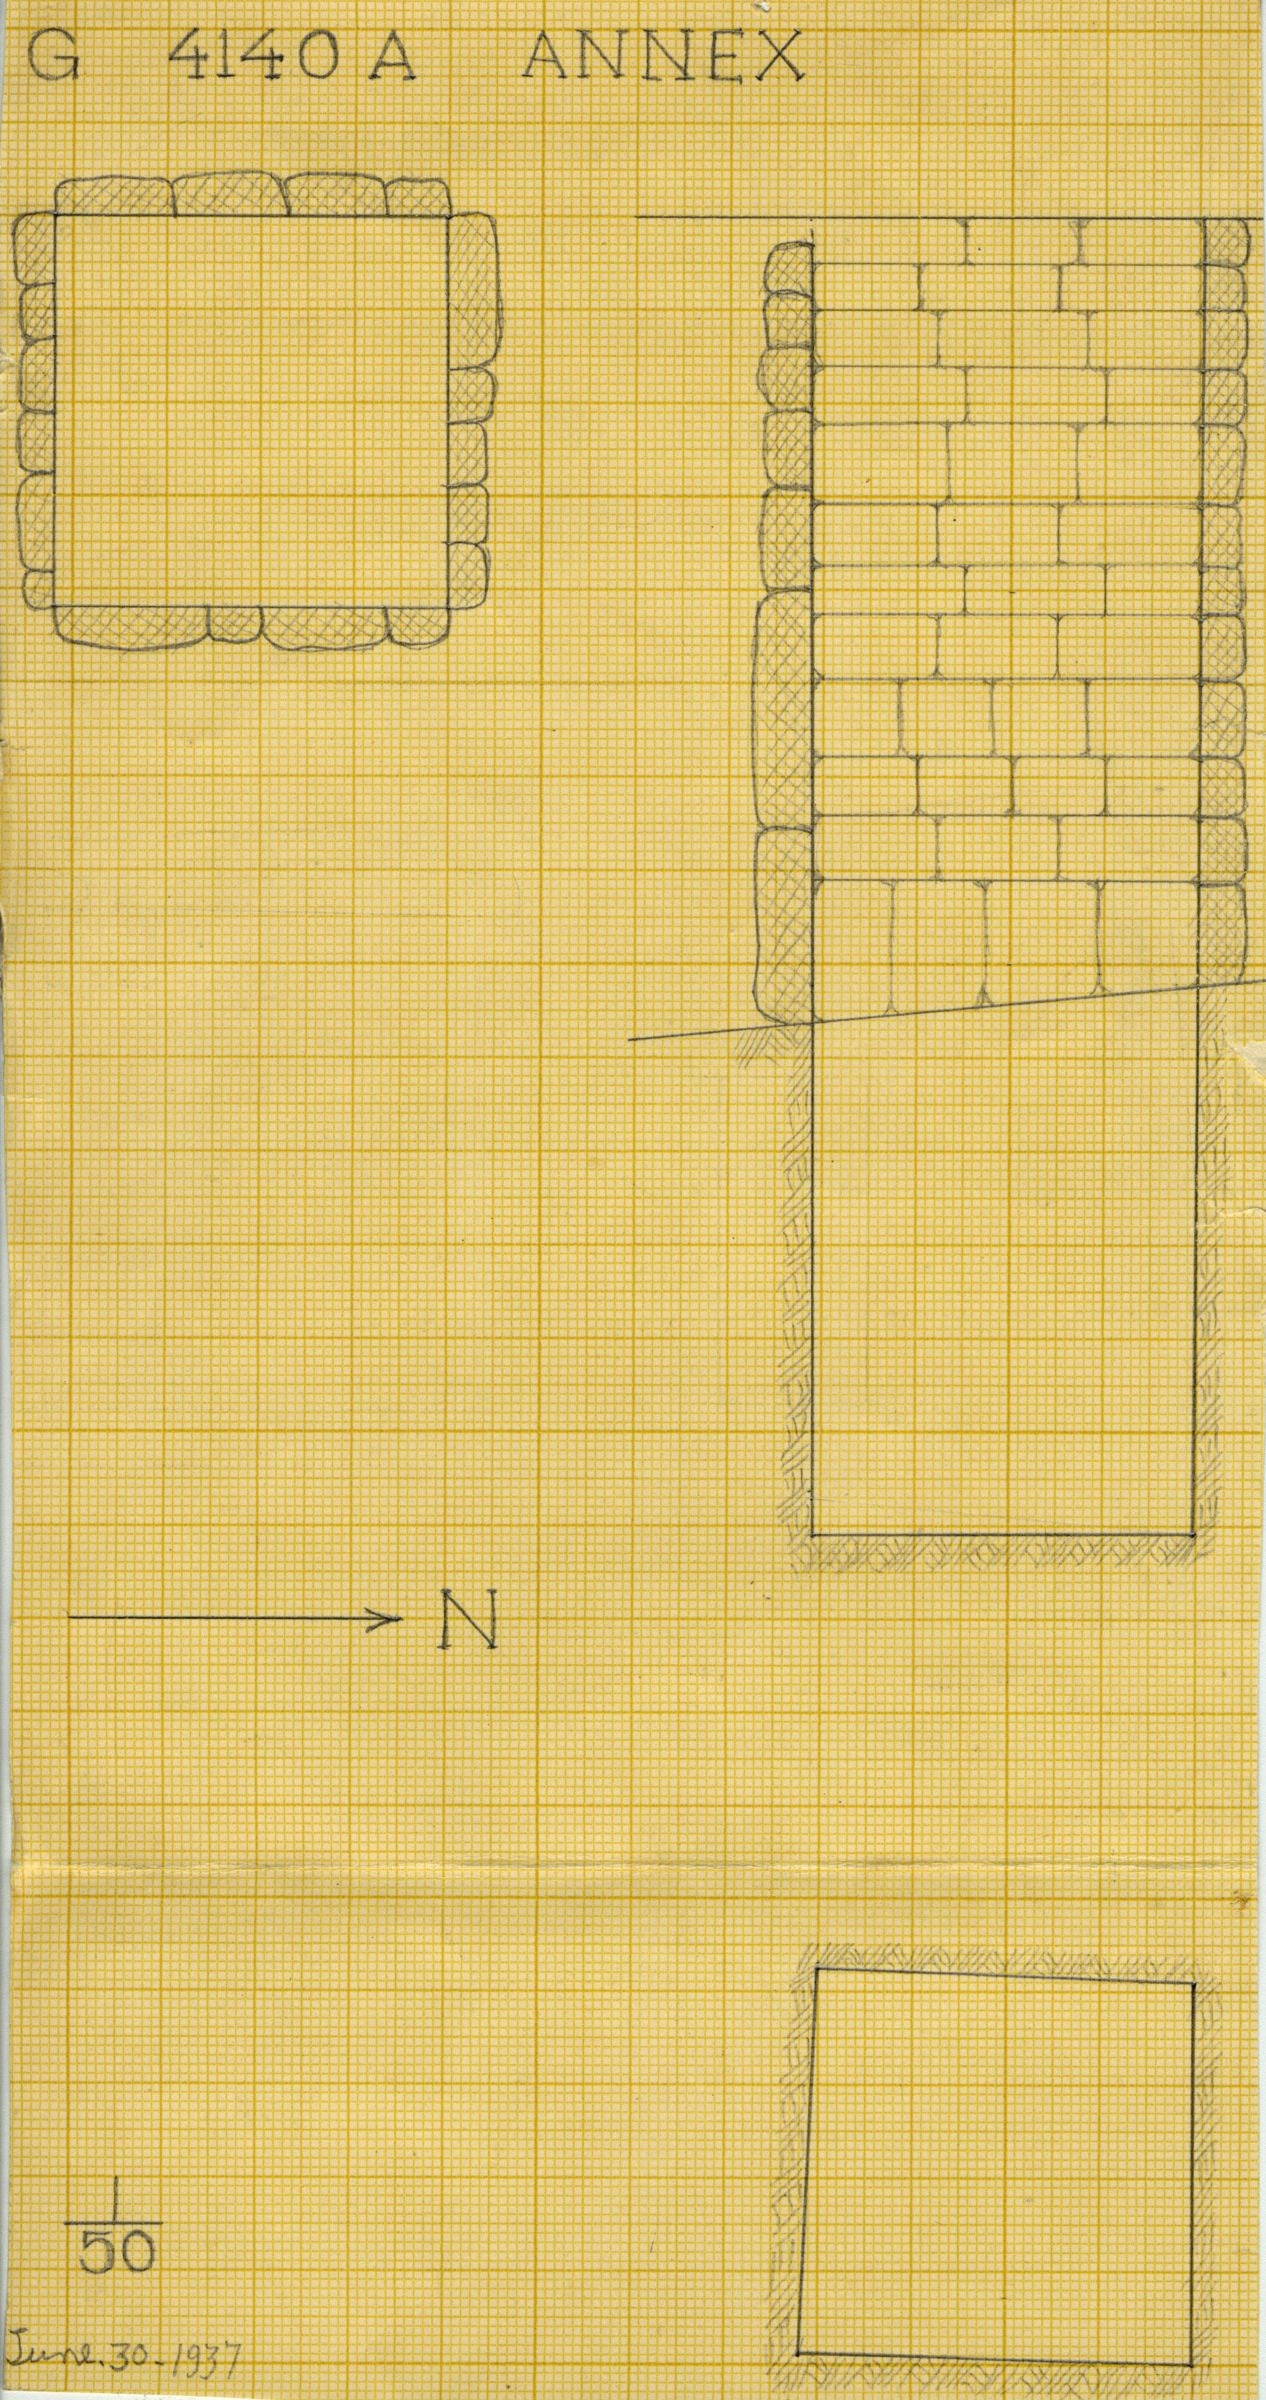 Maps and plans: G 4140-Annex = G 4141, Shaft A